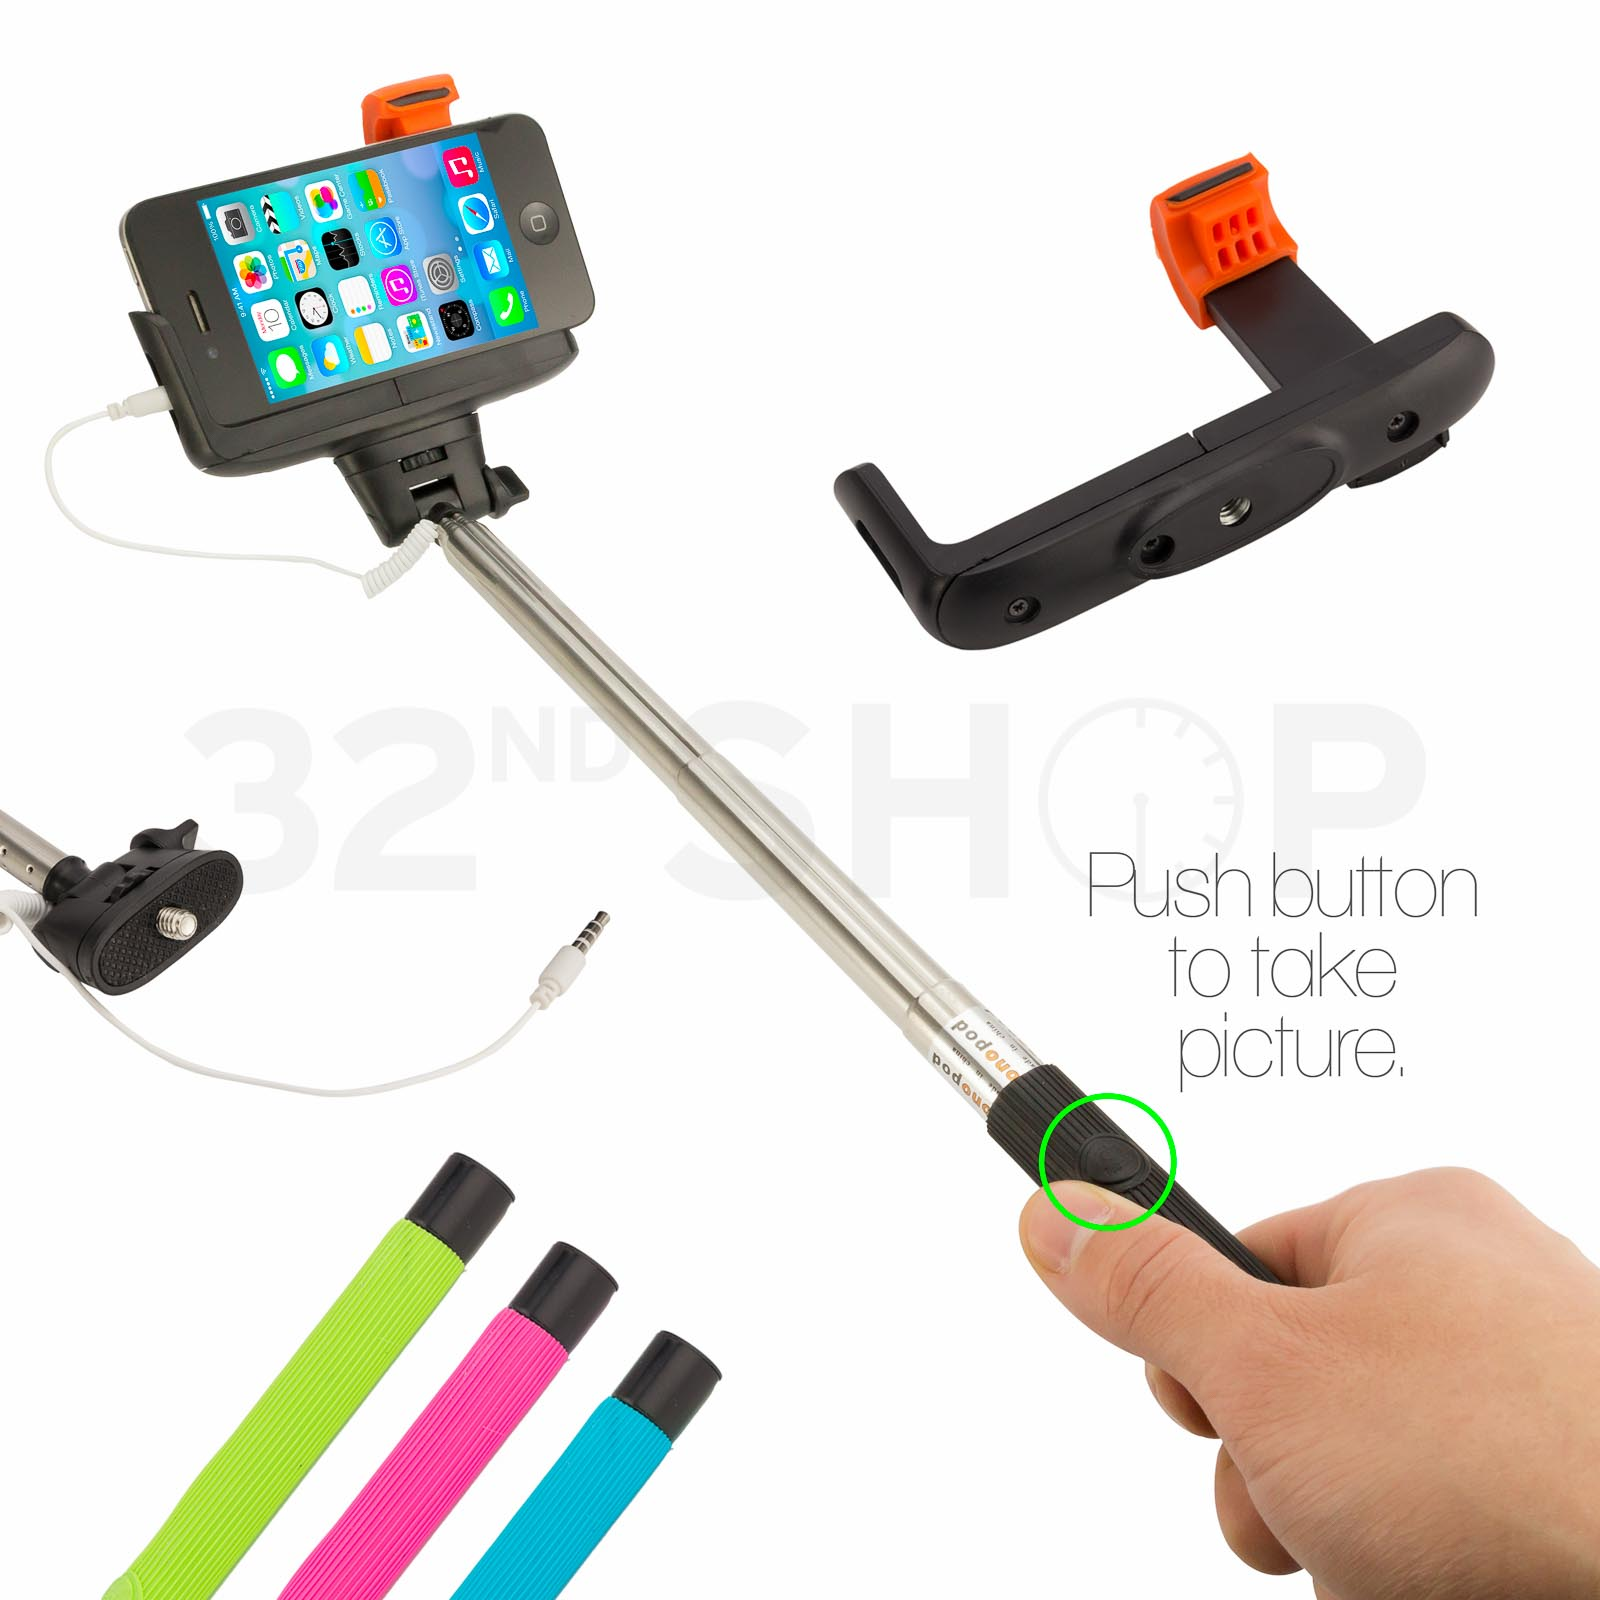 new selfie stick telescopic monopod with shutter button iphone compatible ebay. Black Bedroom Furniture Sets. Home Design Ideas